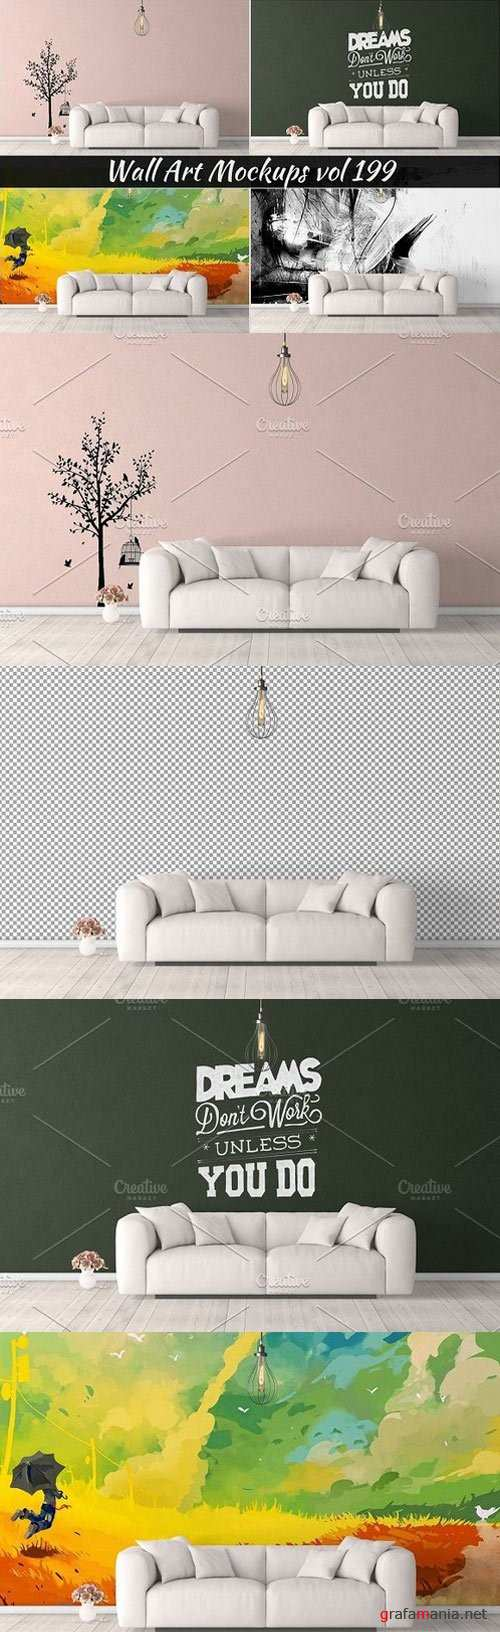 Wall Mockup - Sticker Mockup Vol 199 -1123635